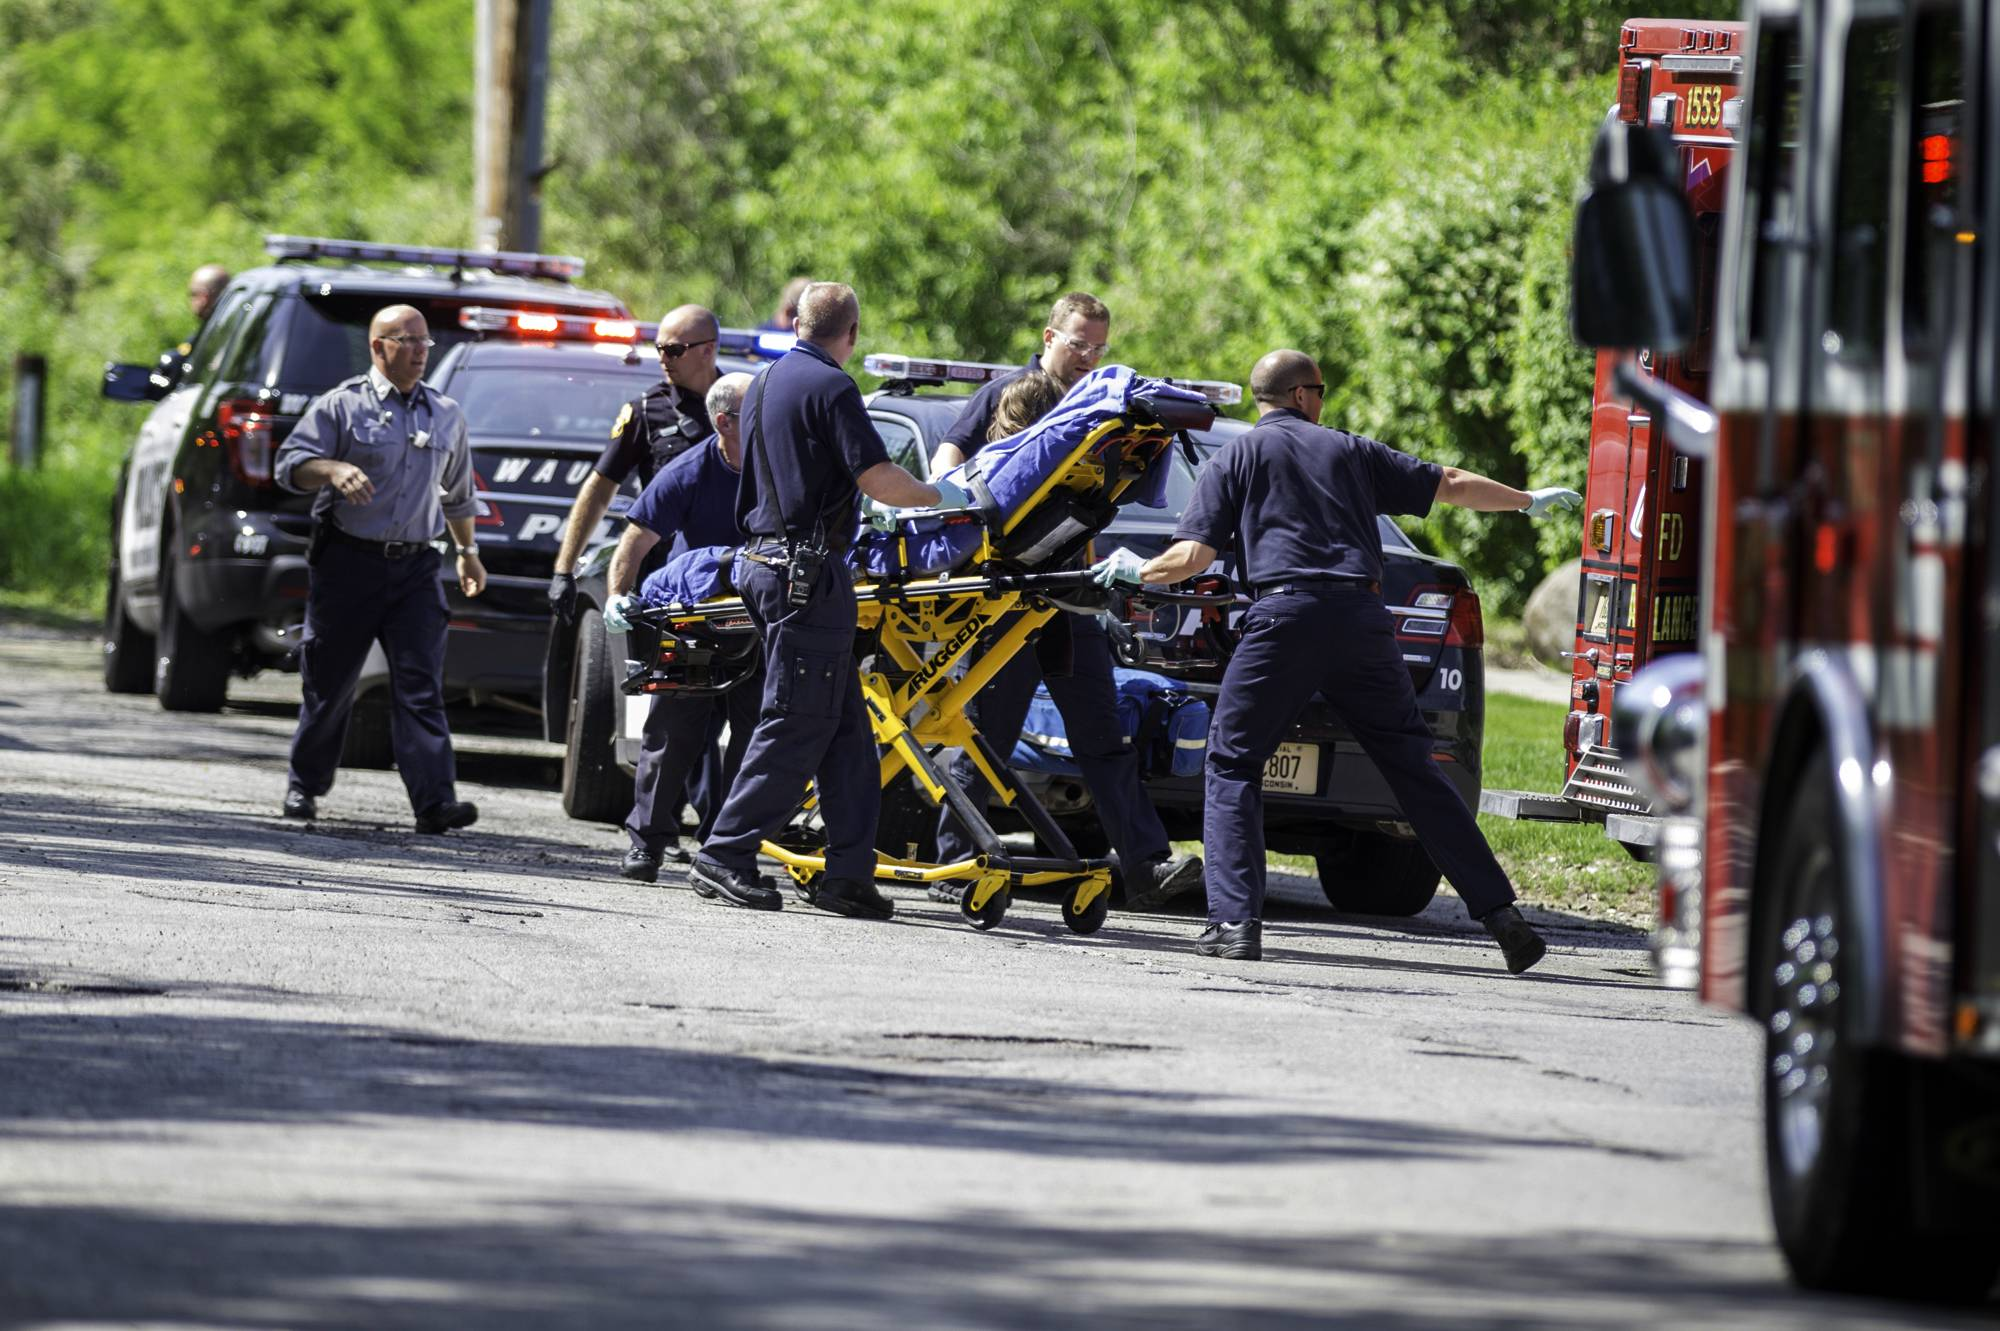 Rescue workers take a 12-year-old stabbing victim to an ambulance in Waukesha, Wis., last Saturday. Neighbors of two U.S. girls accused of stabbing another girl nearly to death say they're struggling to reconcile the allegations with what they know about the 12-year-olds and their upbringings.